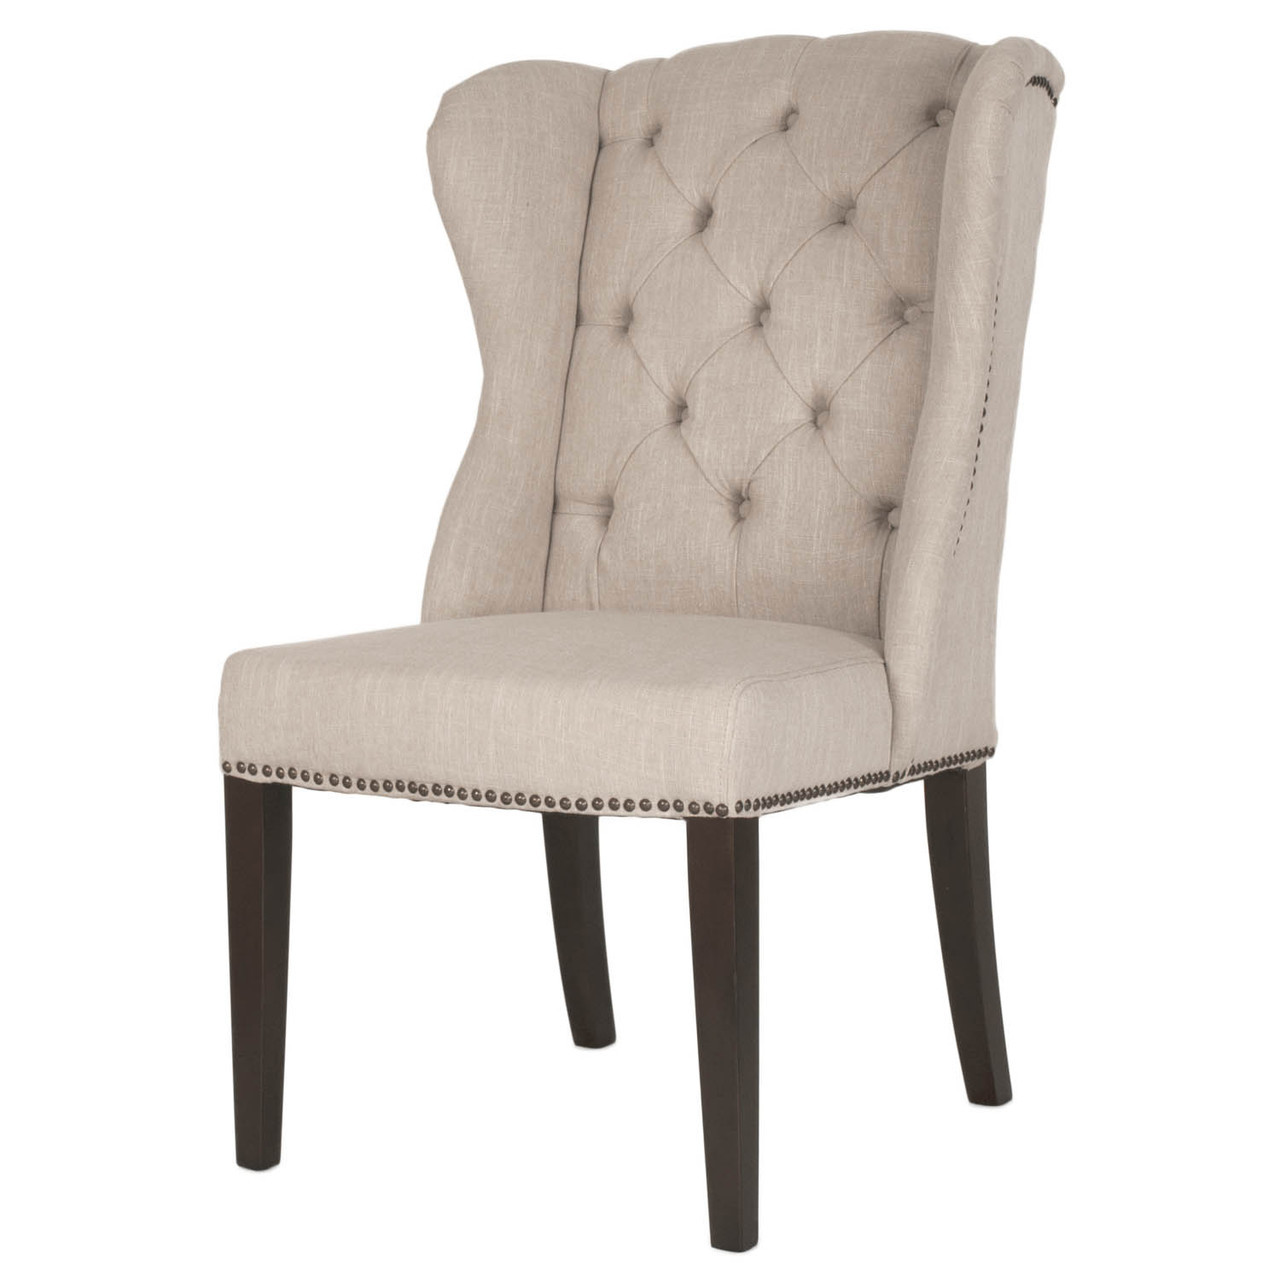 tufted wingback dining chair steel specification maison hostess zin home